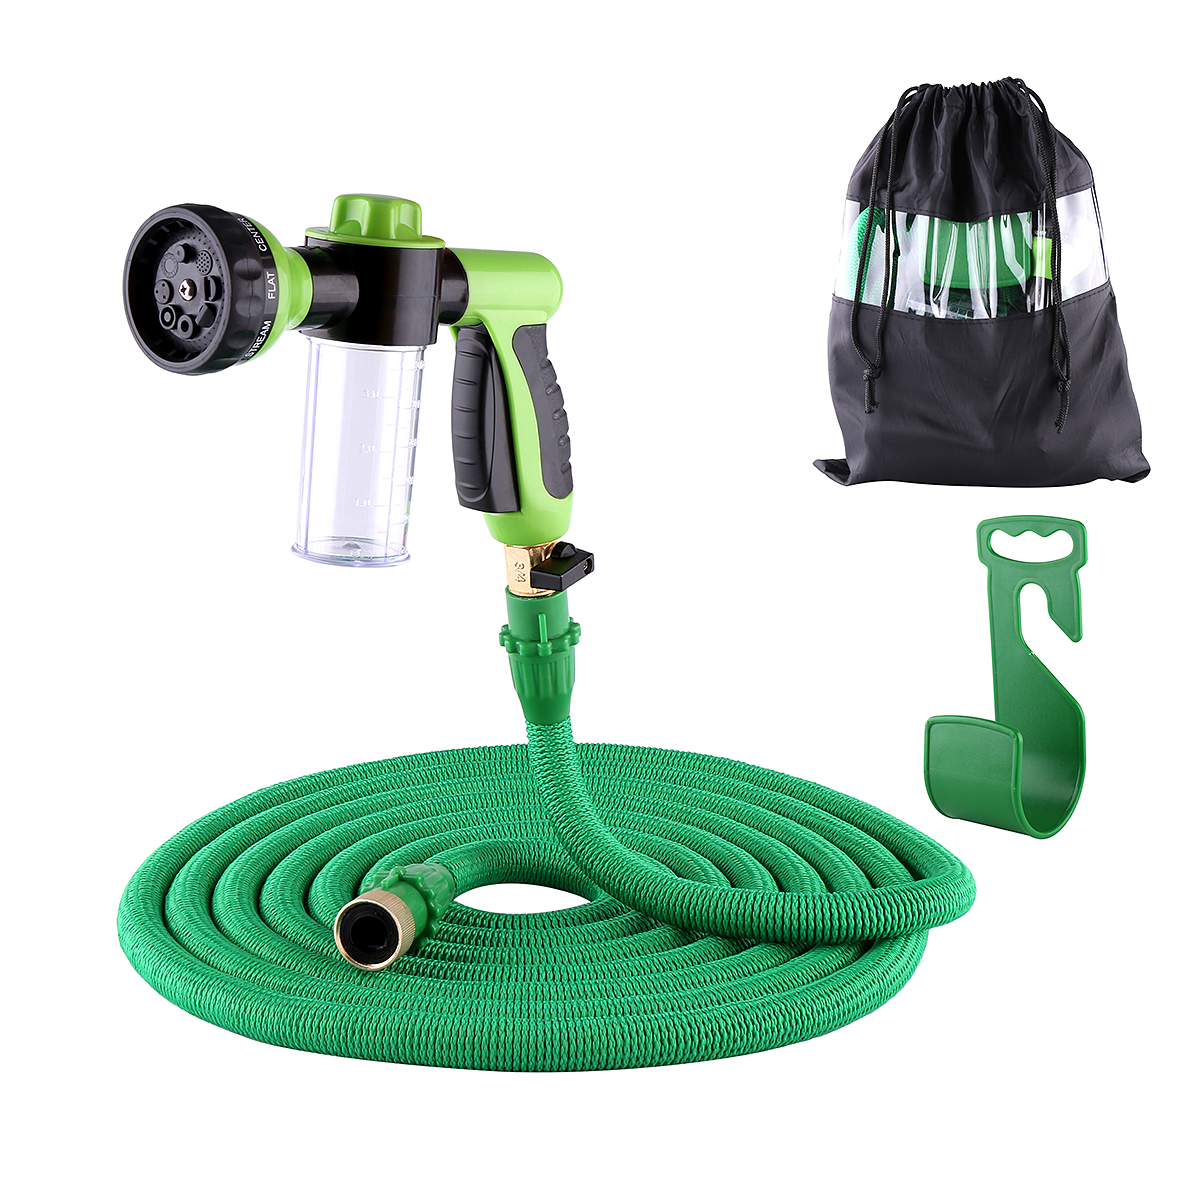 Salmope Expandable Garden Hose Set High Pressure Water Sp...